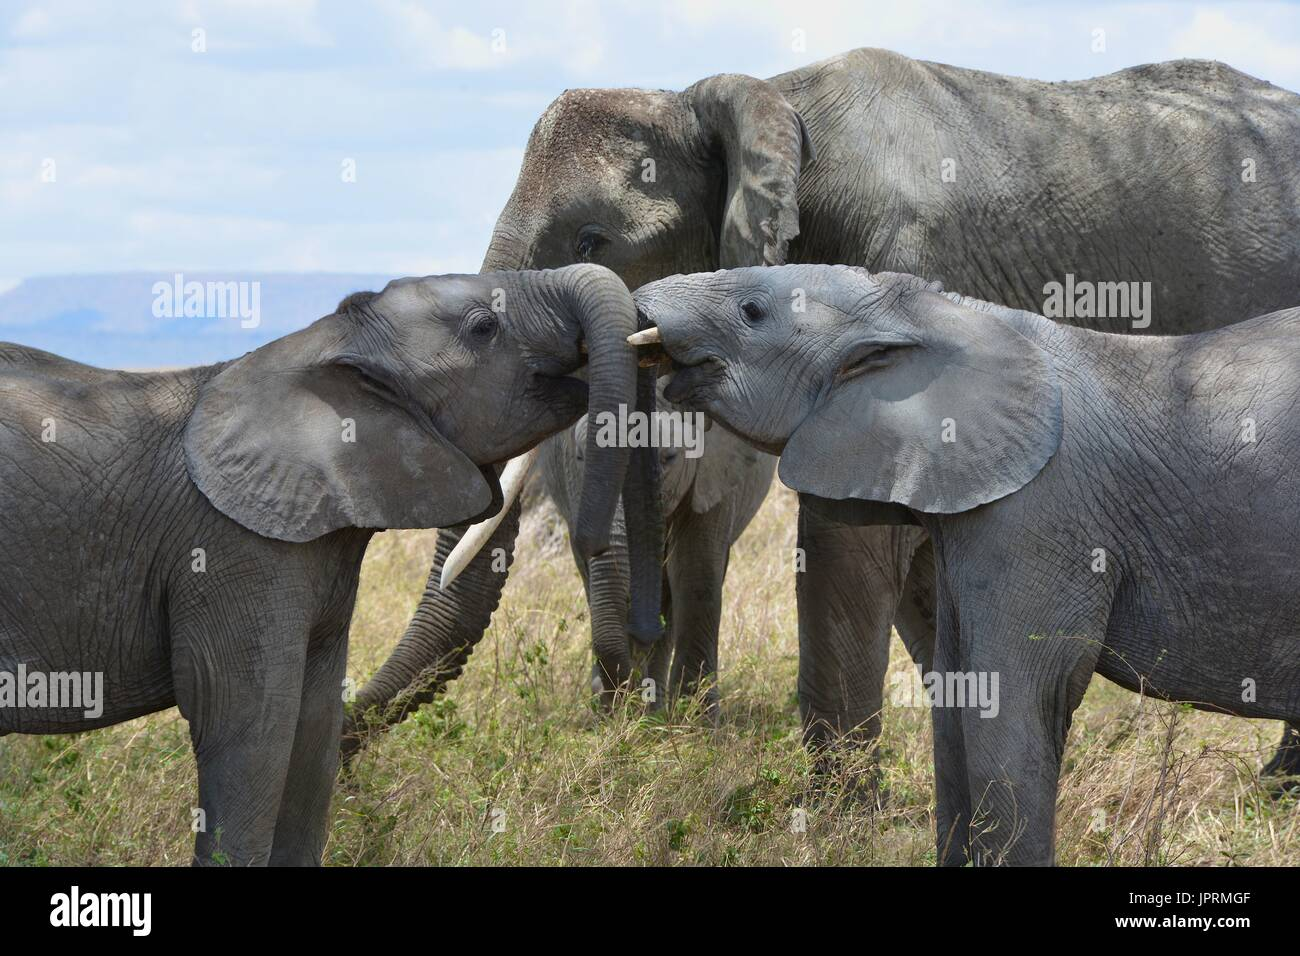 Les éléphants se promènent le Serengeti Photo Stock